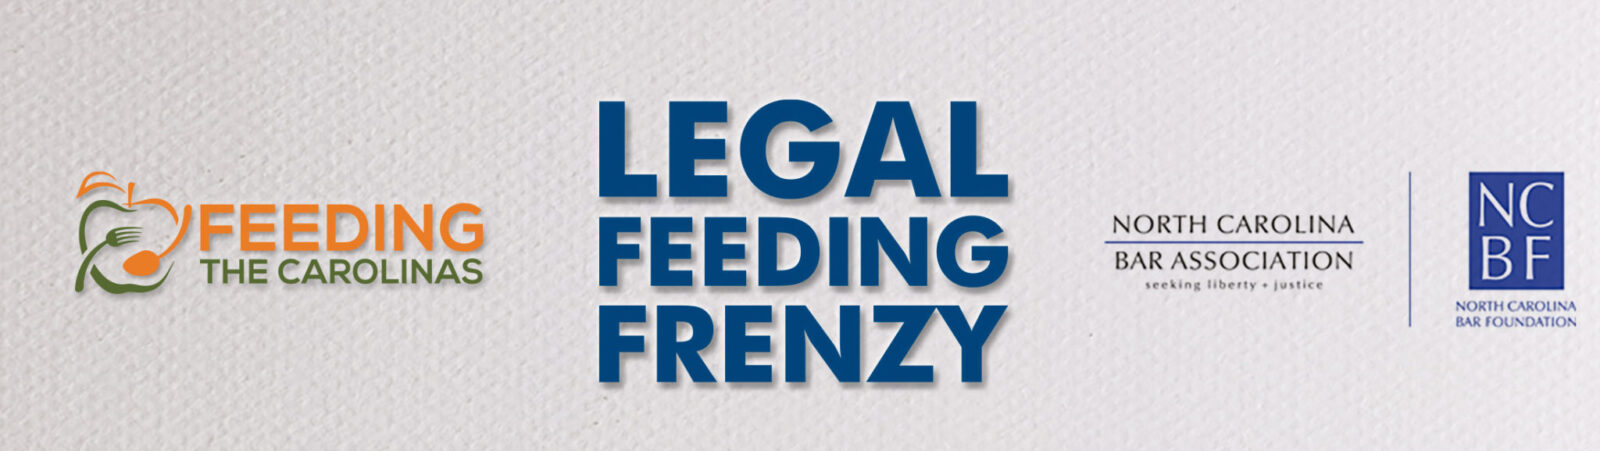 North Carolina Legal Feeding Frenzy food drive